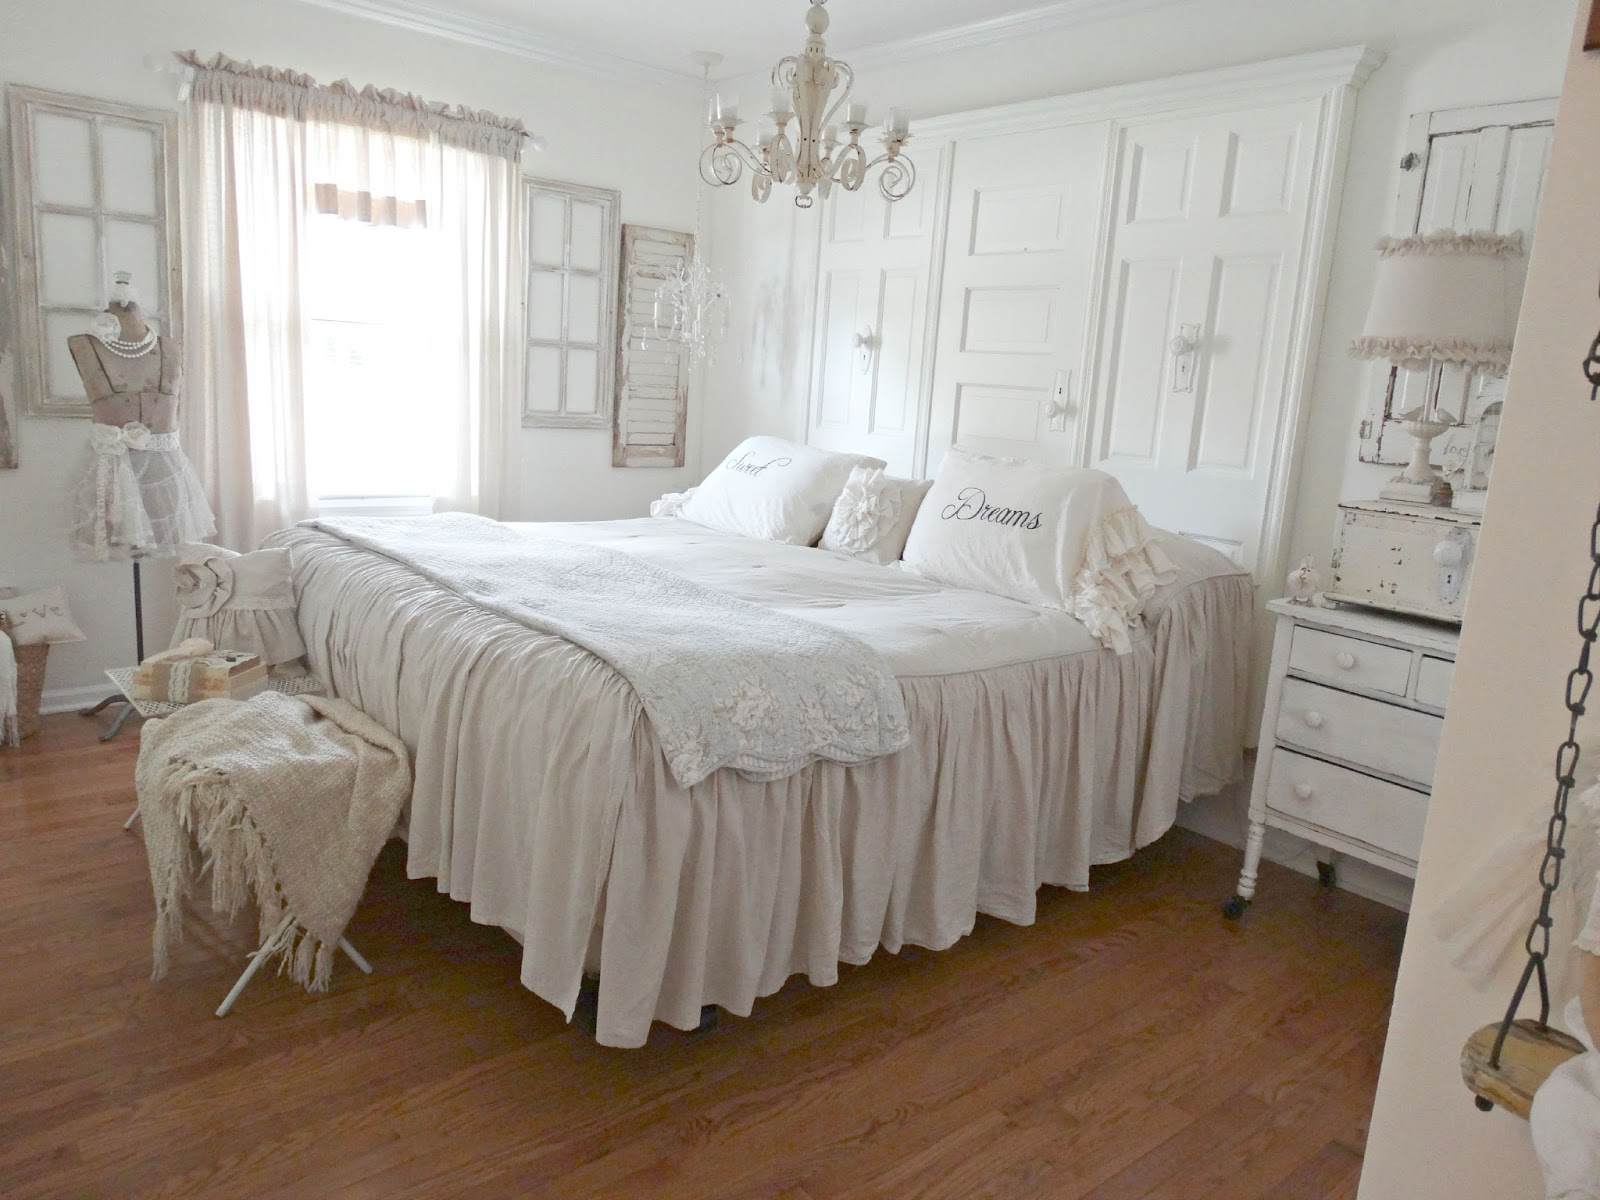 Junk chic cottage home sweet home for sale for Guest room bed size